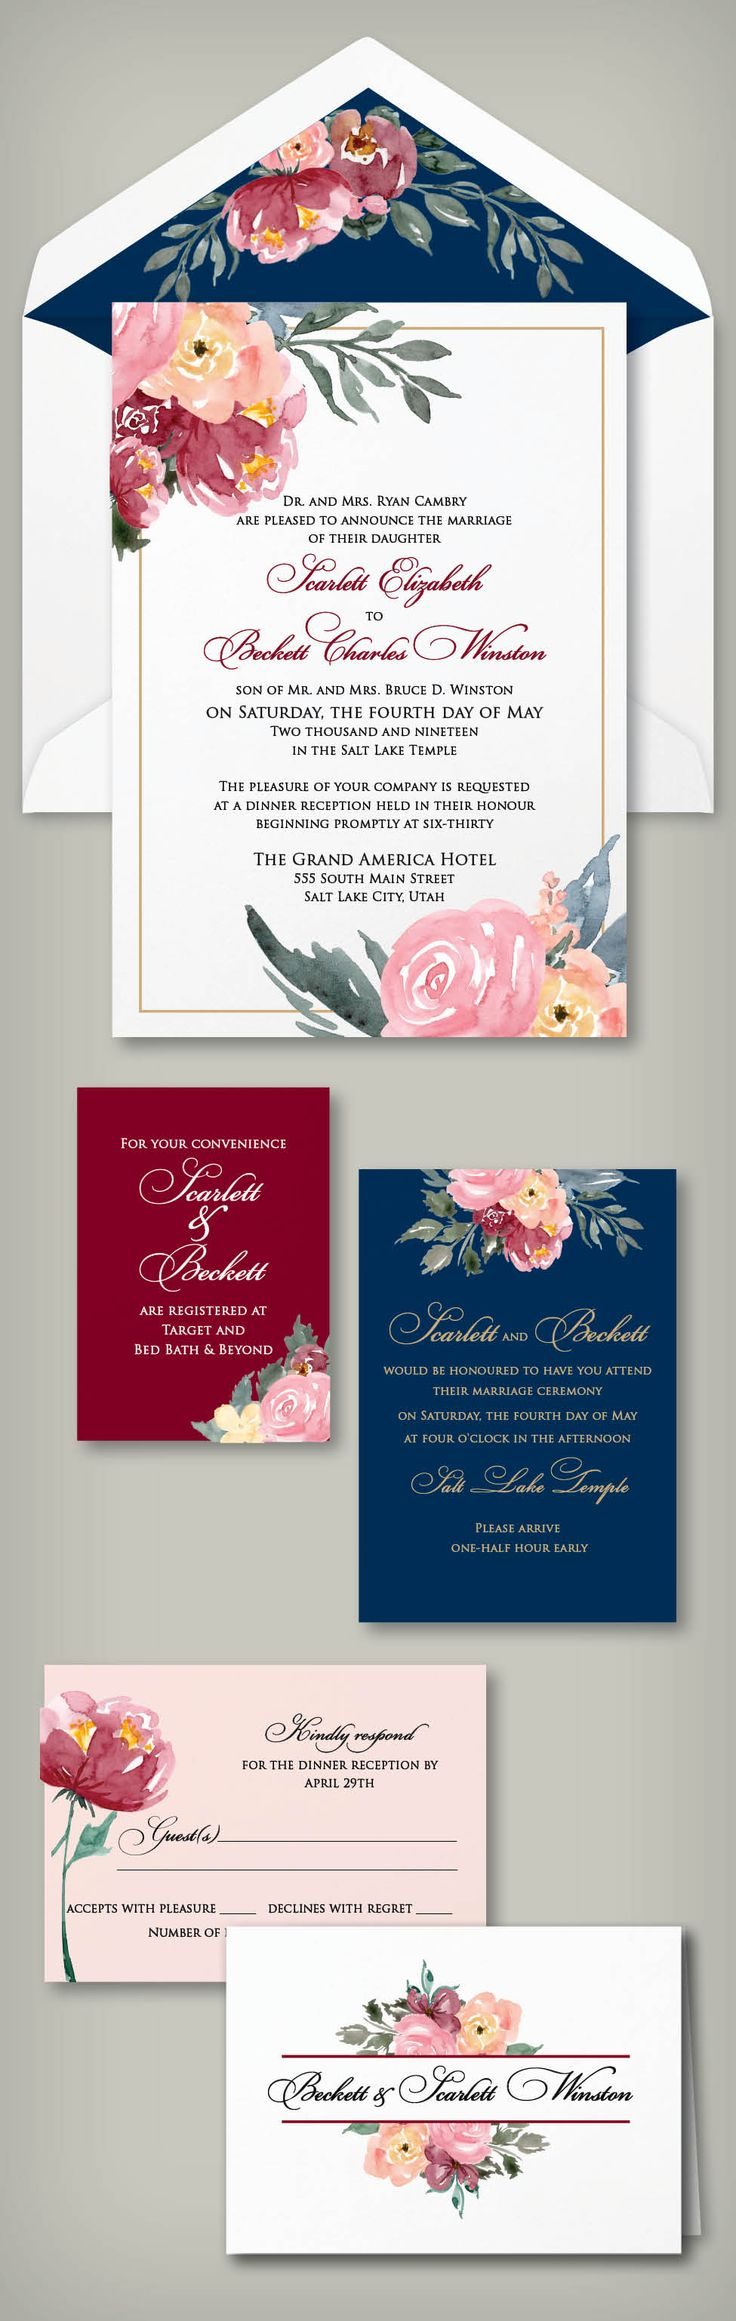 12 Best Wedding Invitation Ideas Images On Pinterest Invitation